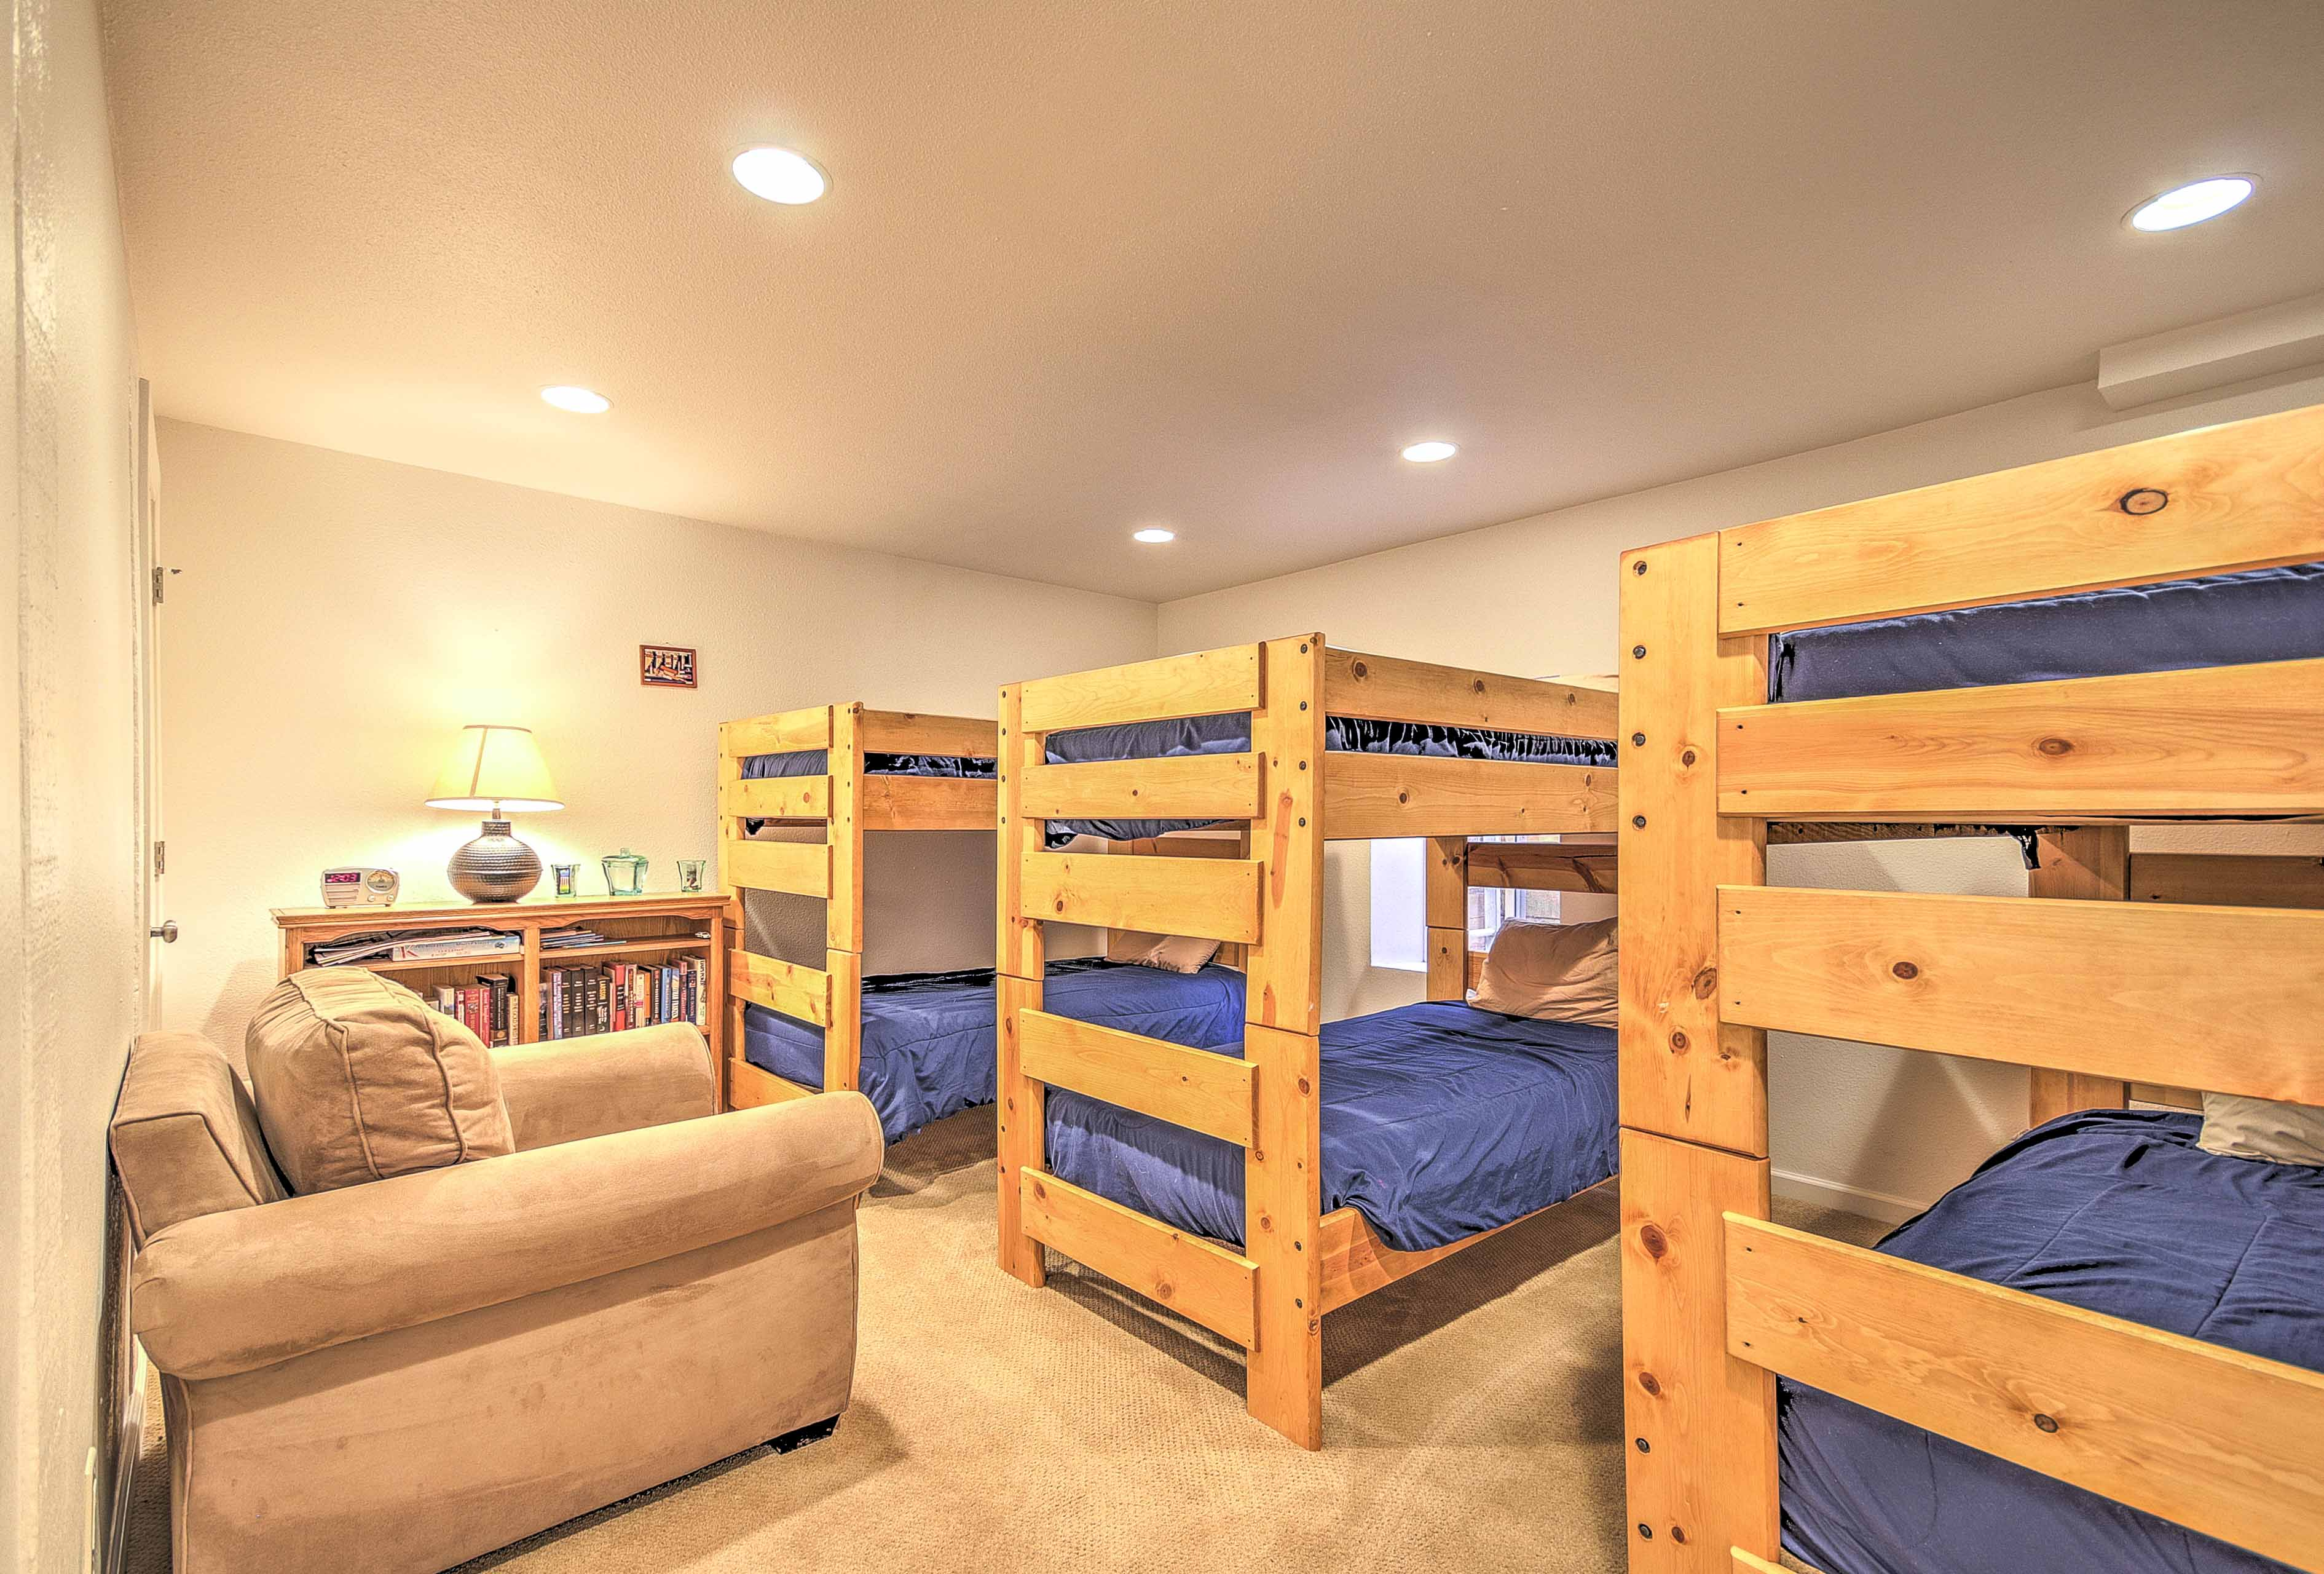 This room can sleep up to 6 guests!